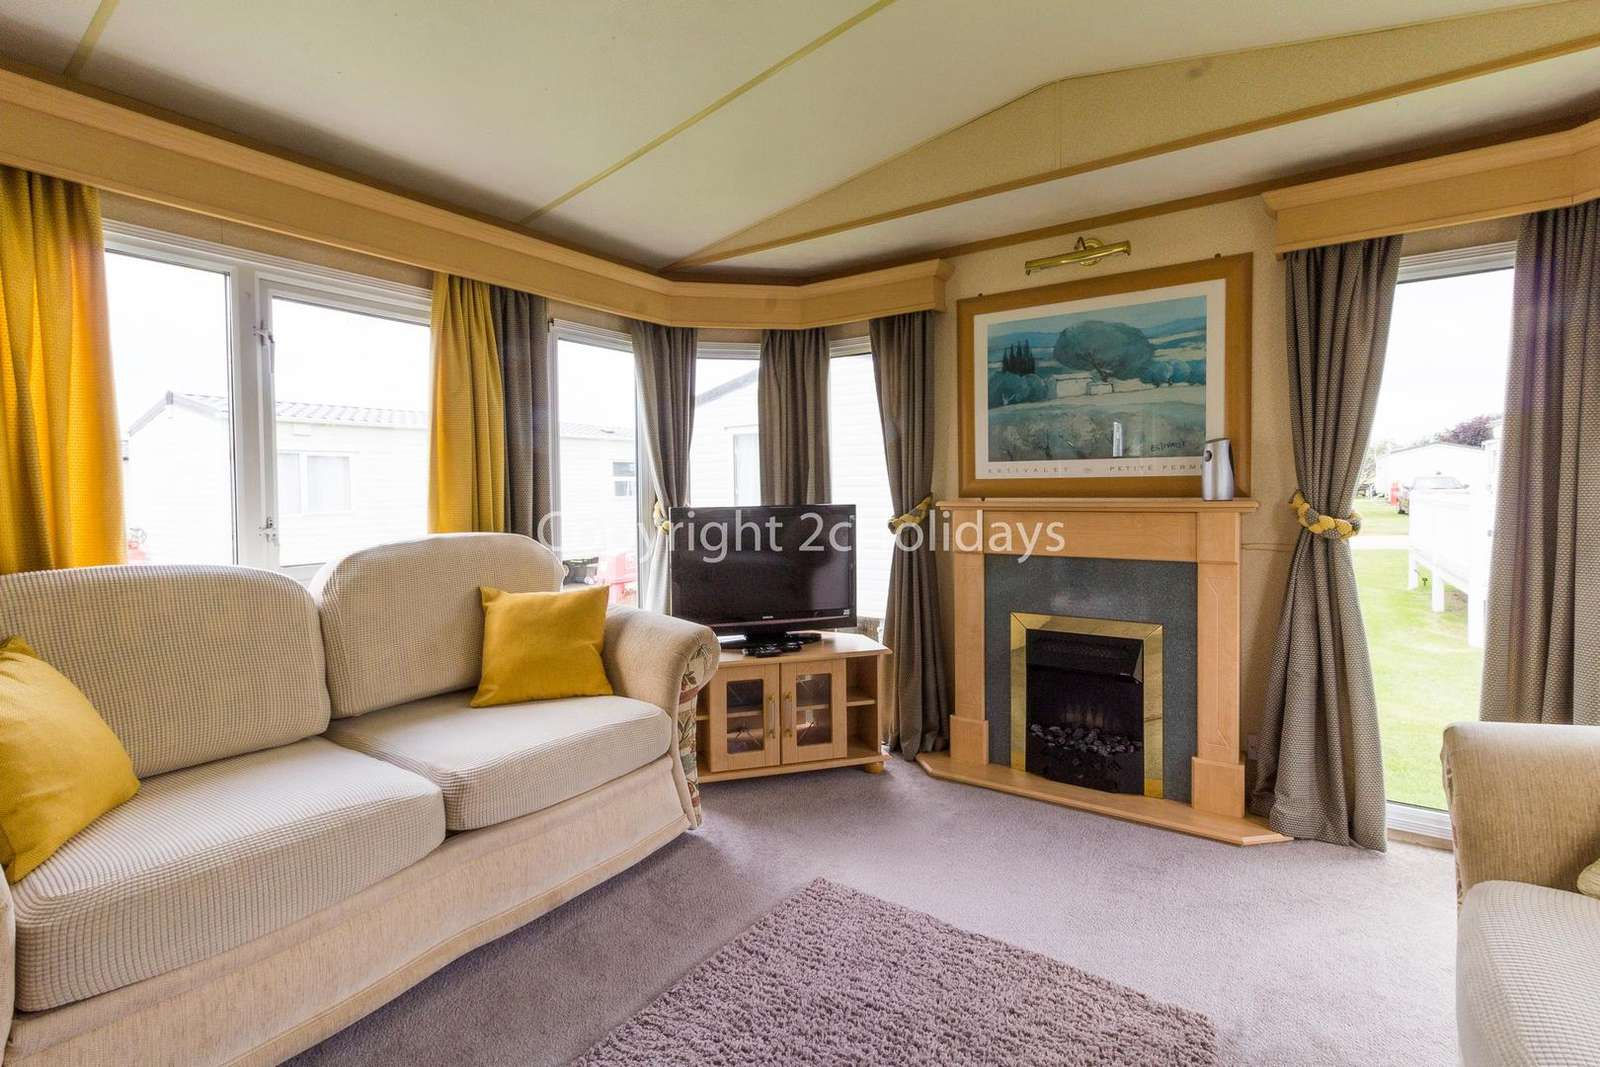 You can relax in this living area which comes with a TV and a gas fire